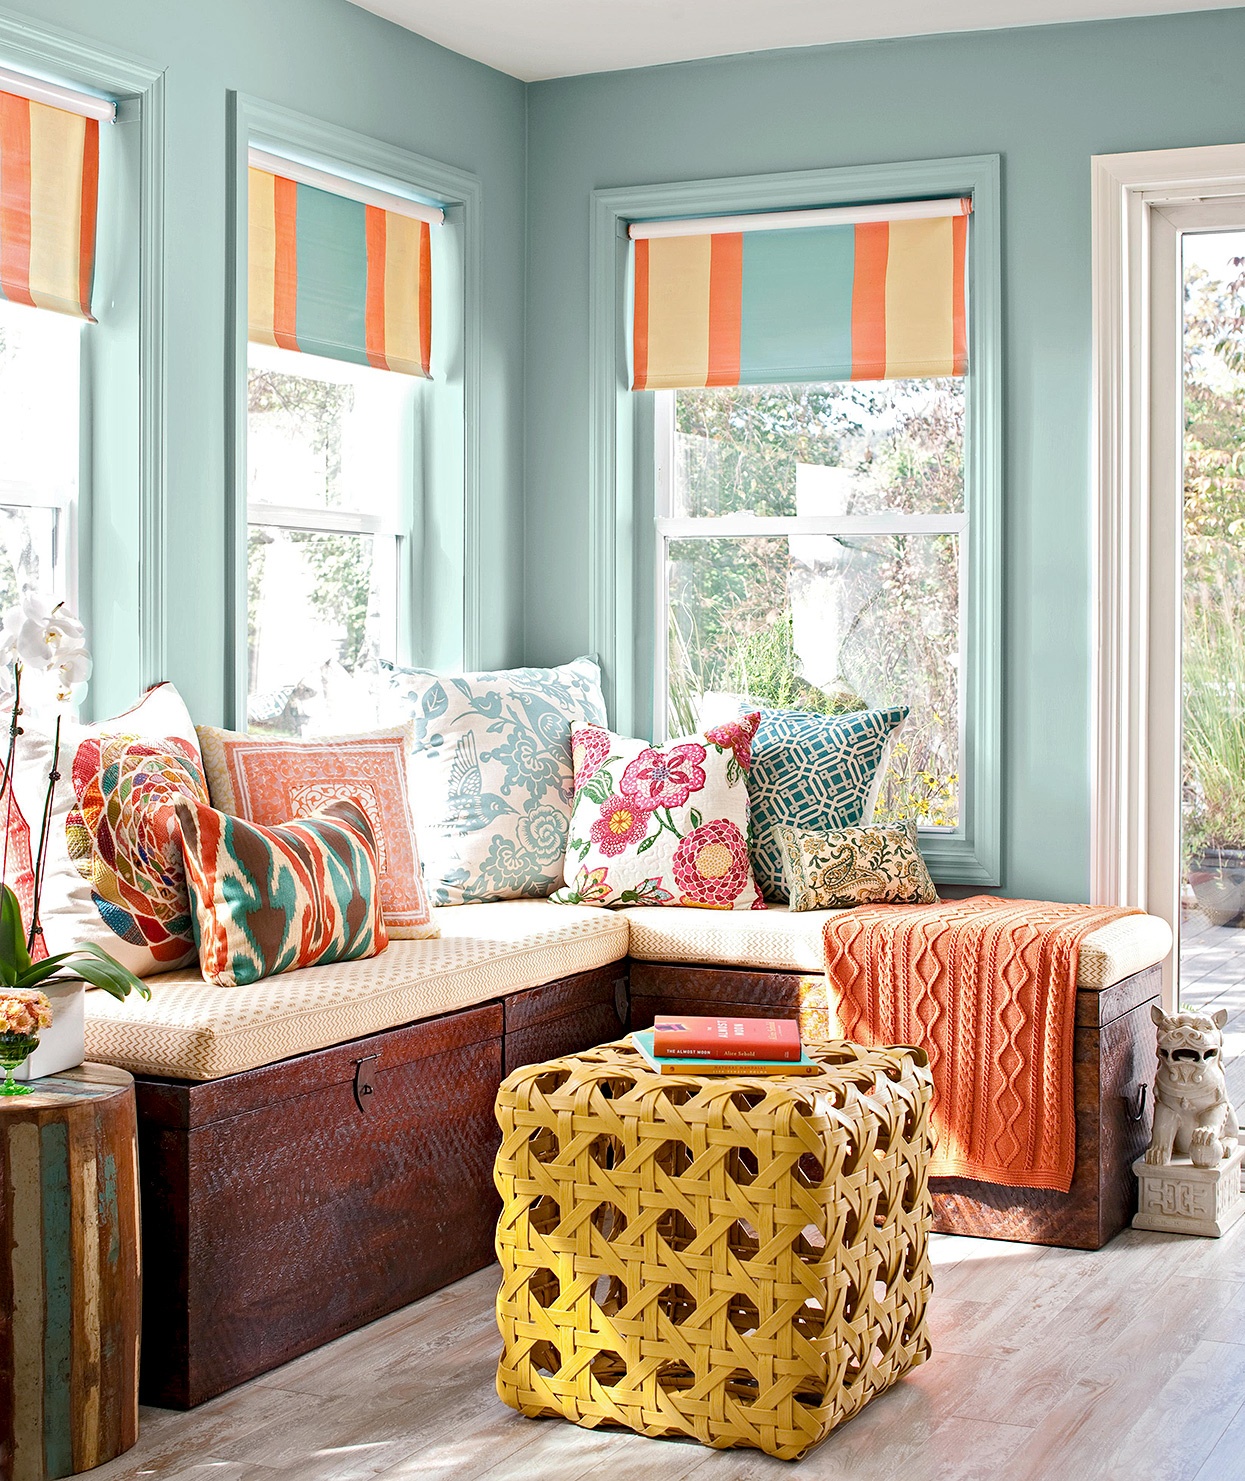 turquoise sunroom corner with chests and cushions for seating